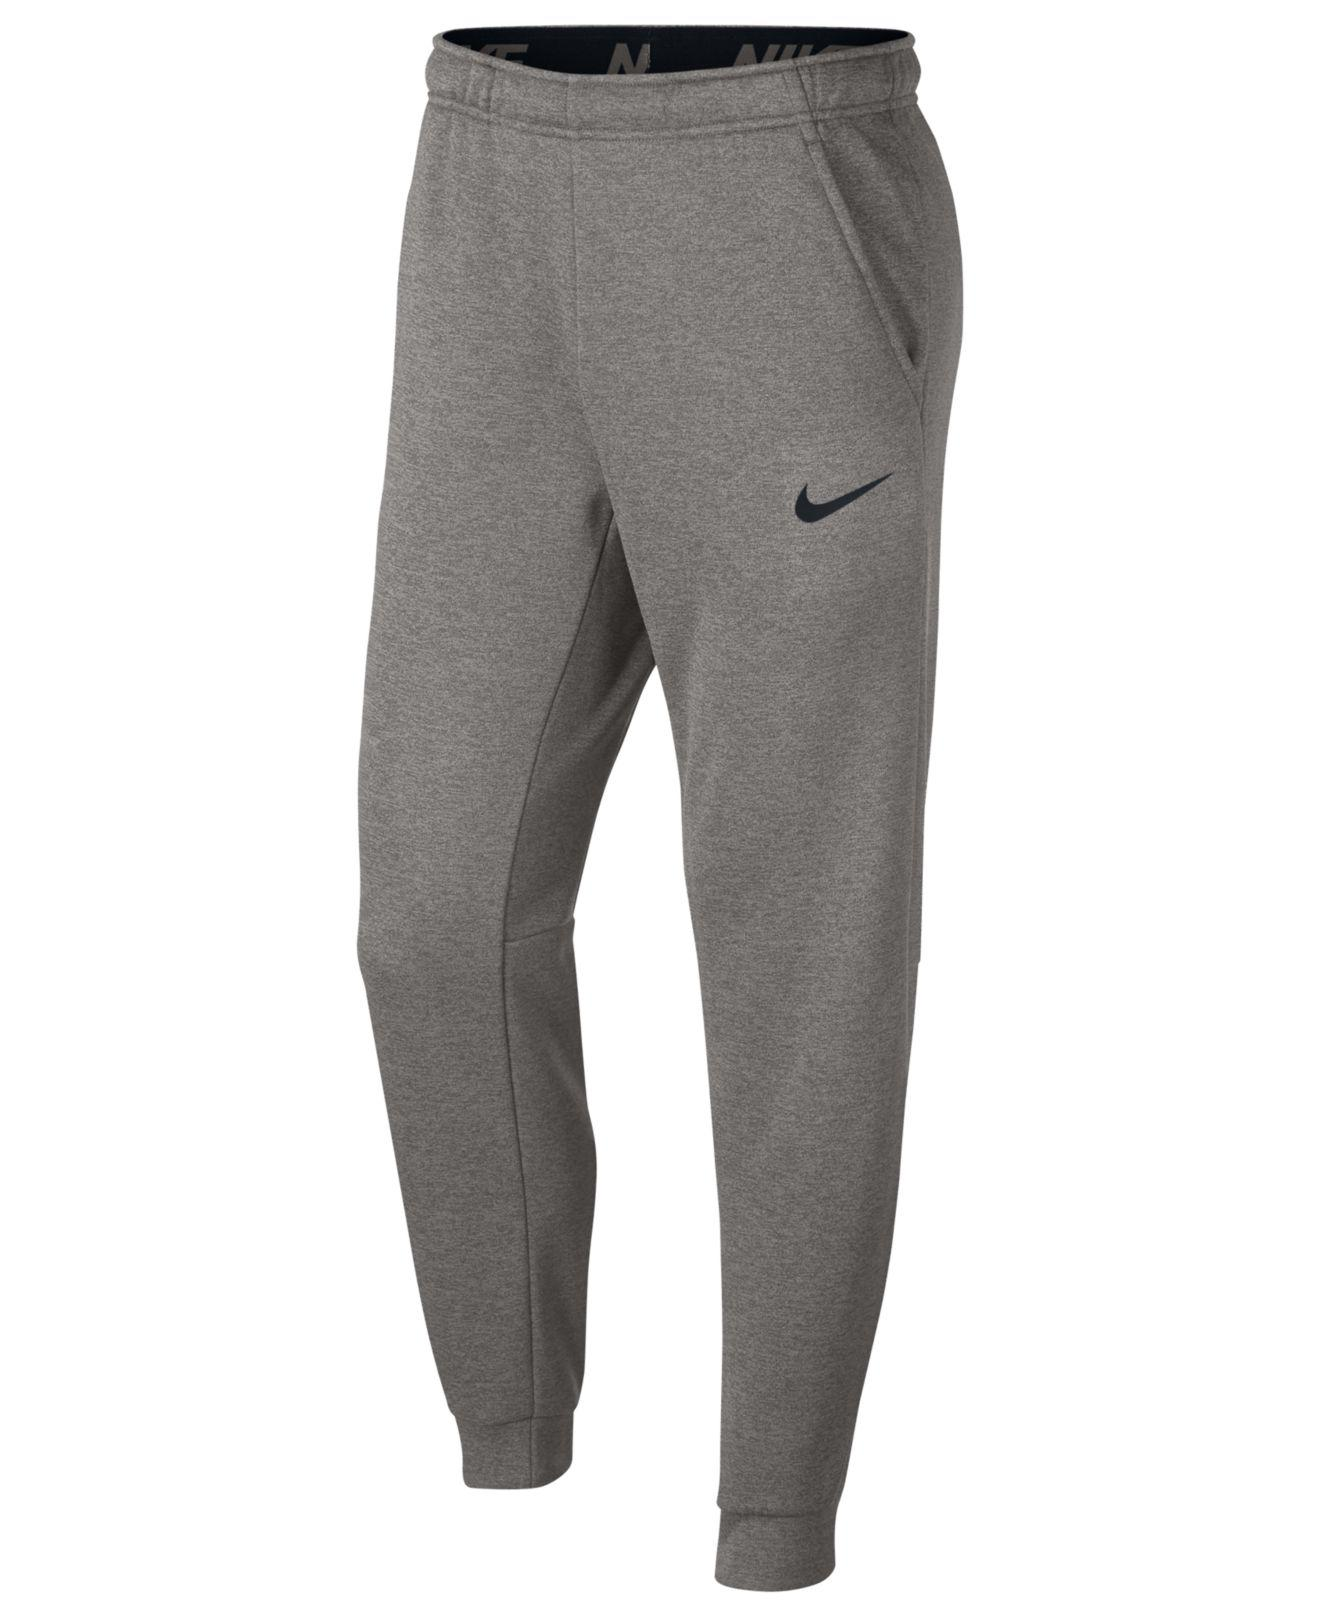 c1fdd02fc4 Lyst - Nike Therma Tapered Training Pants in Gray for Men